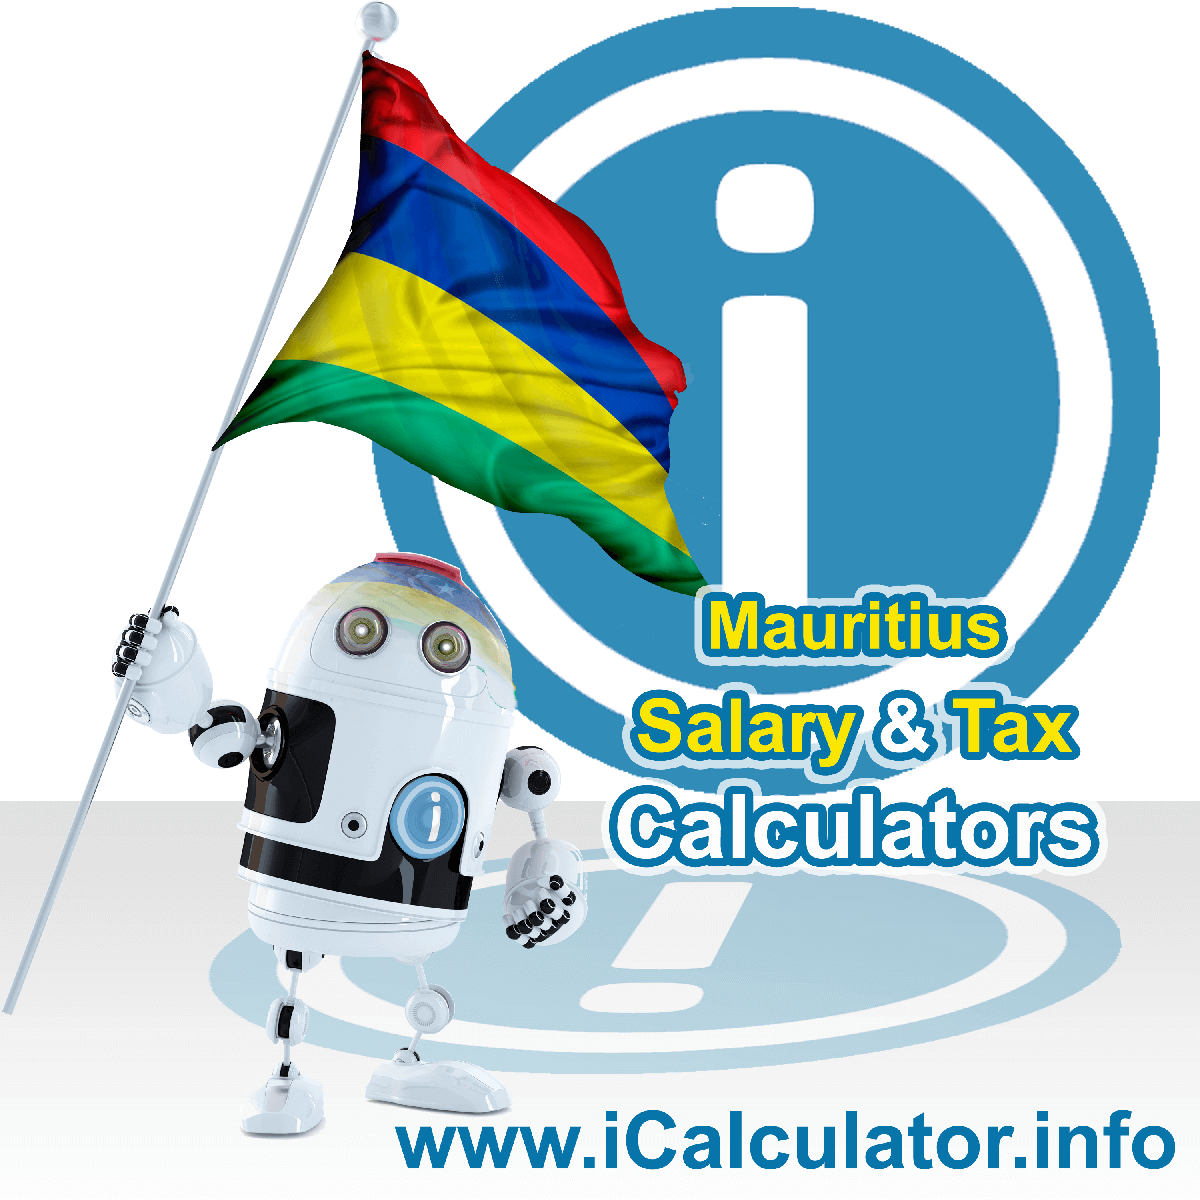 Mauritius Tax Calculator. This image shows the Mauritius flag and information relating to the tax formula for the Mauritius Salary Calculator